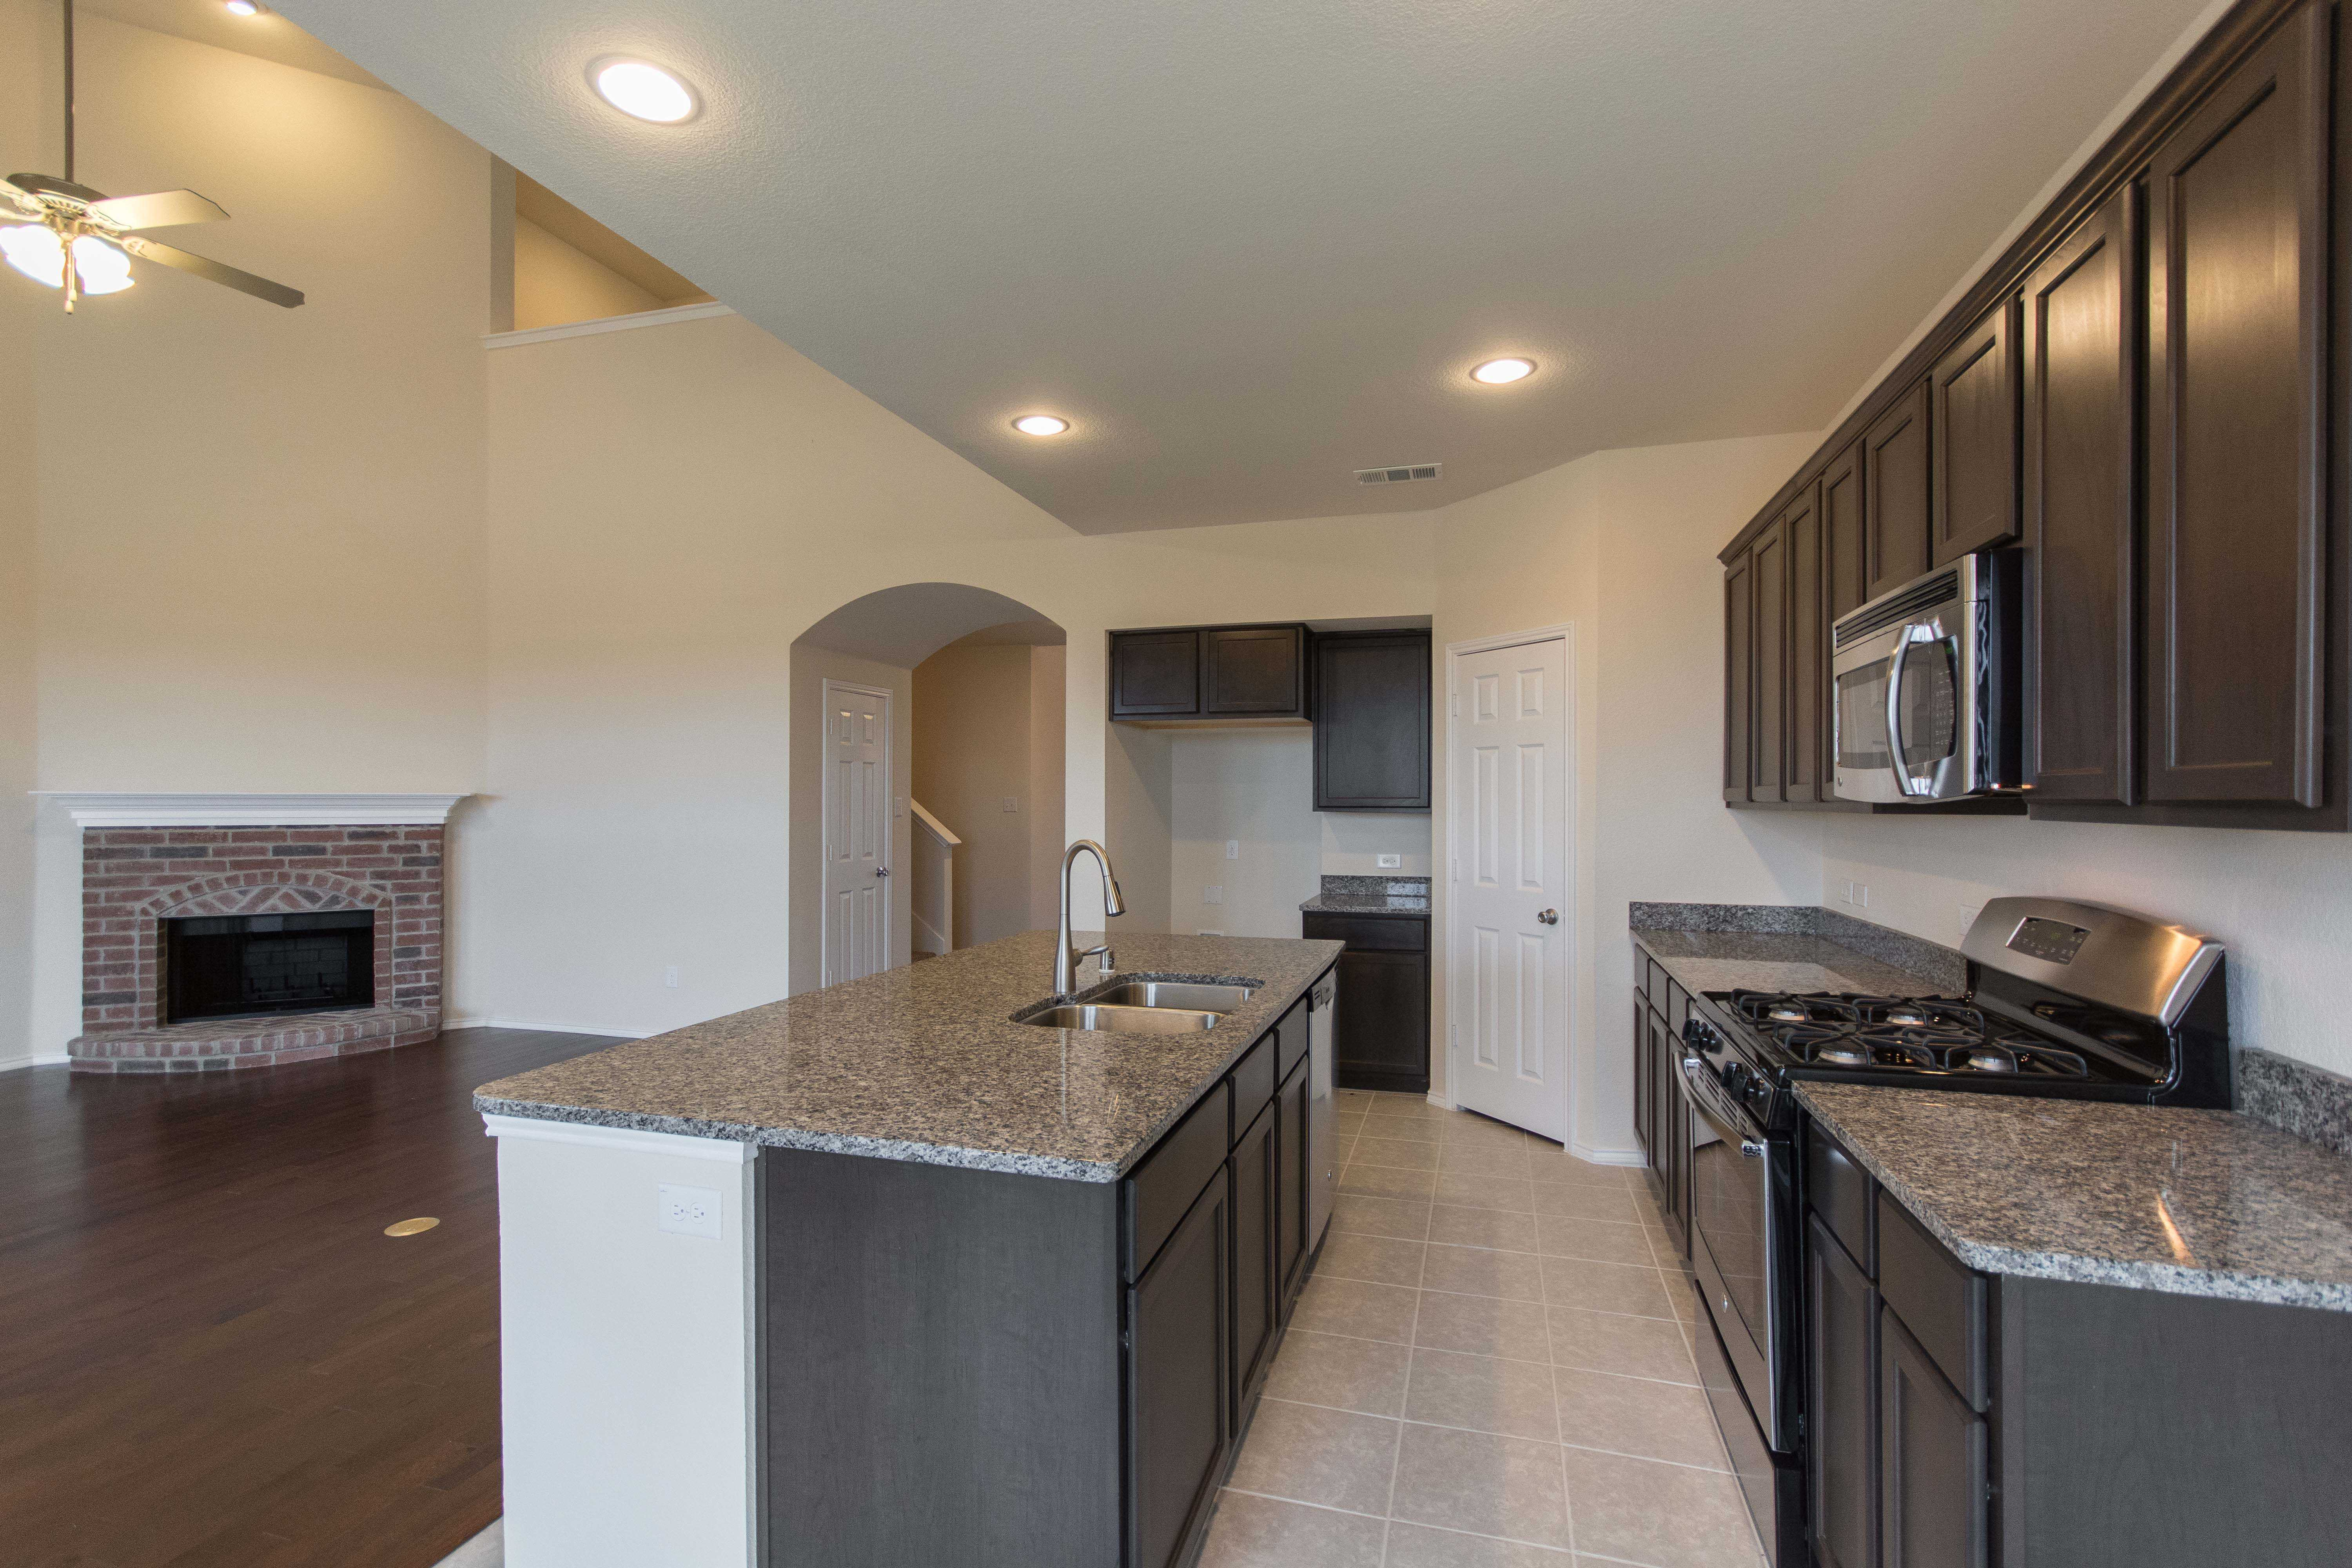 Kitchen featured in the Plan Eastbourne By Highland Homes in Dallas, TX